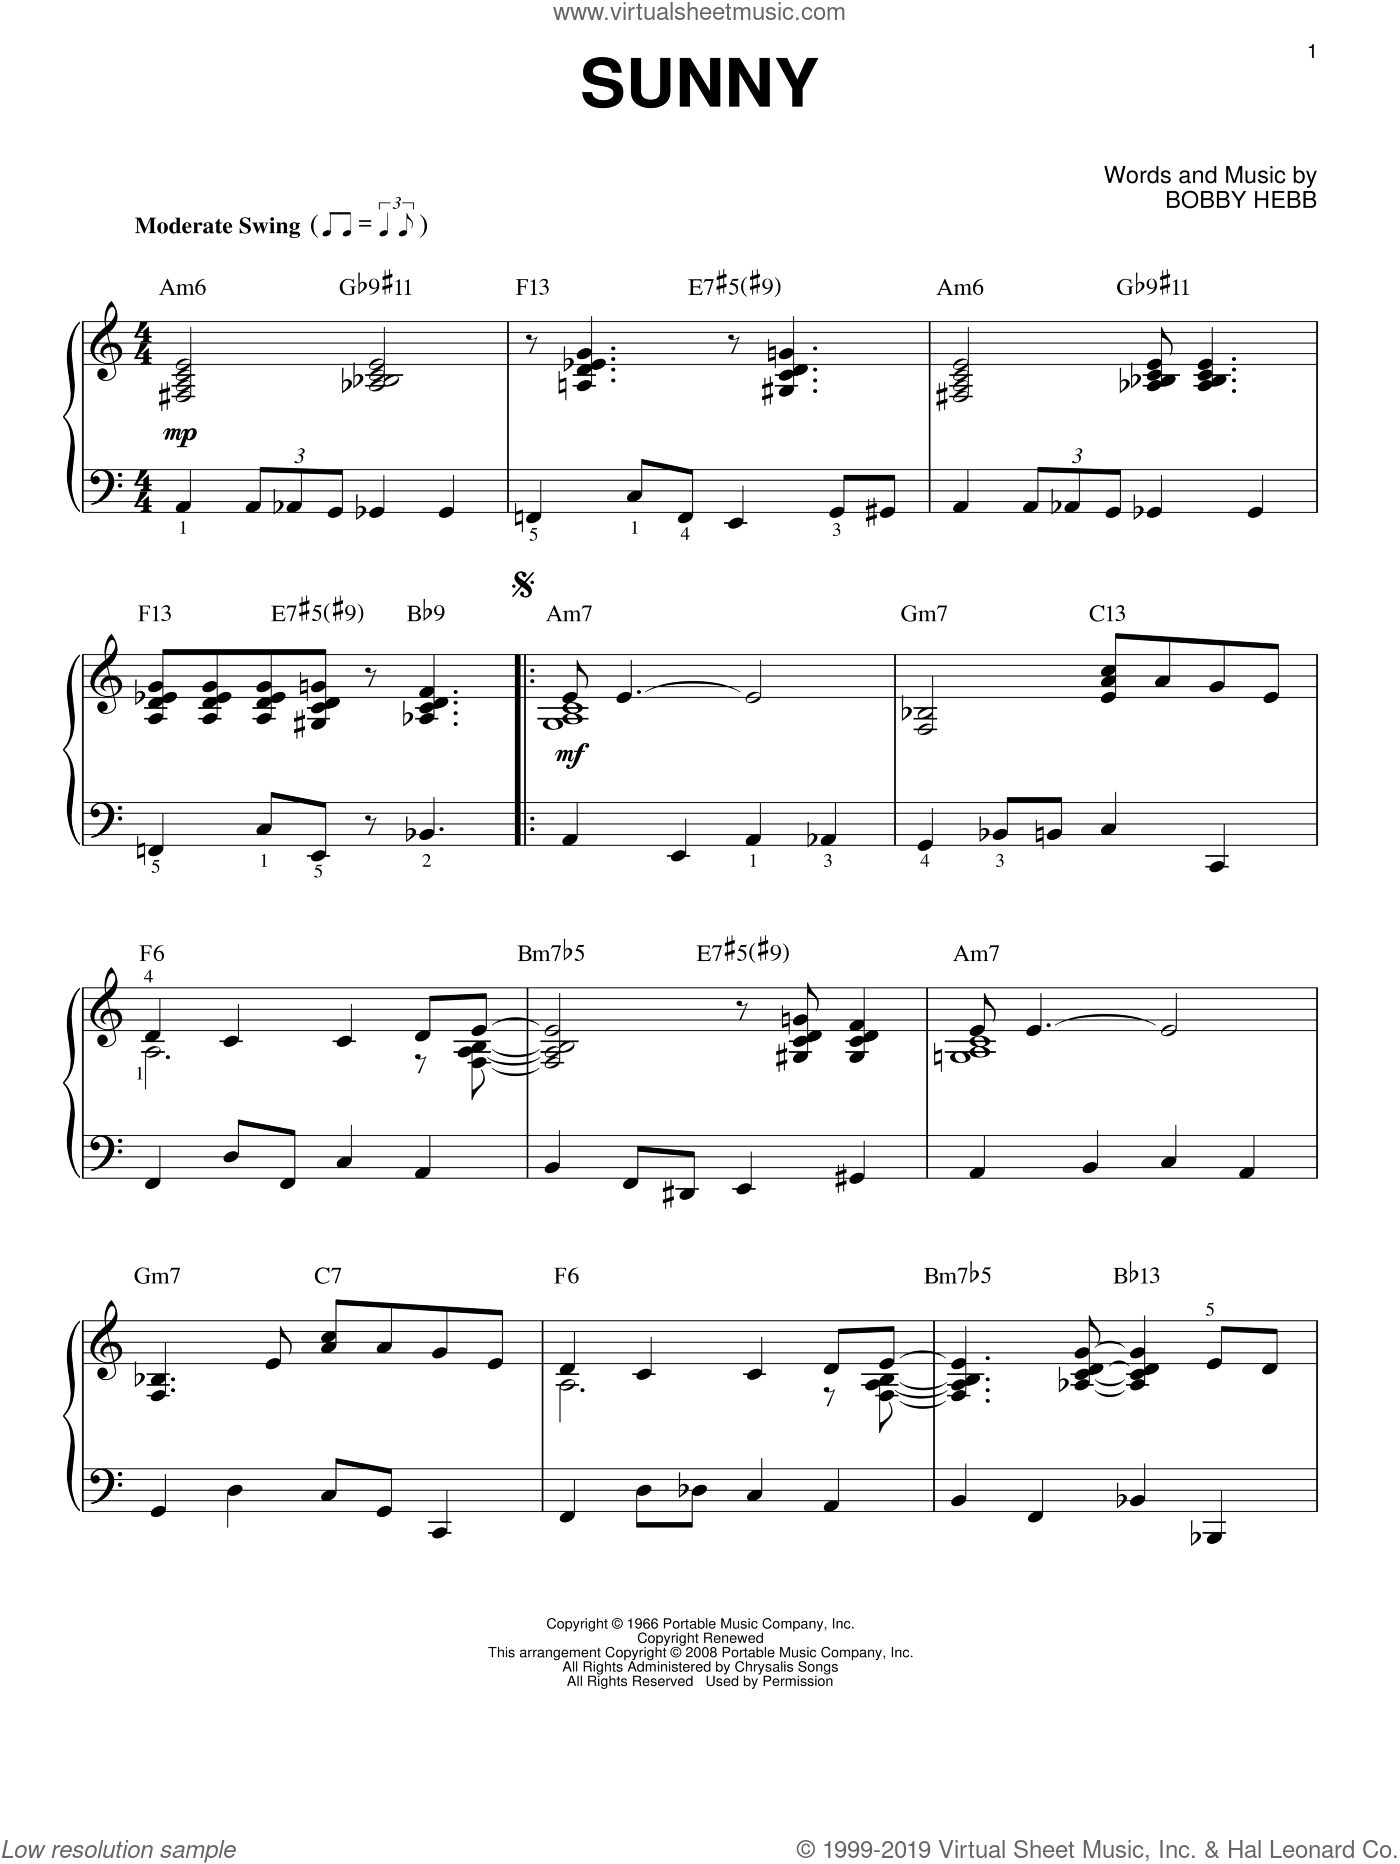 Sunny [Jazz version] (arr. Brent Edstrom) sheet music for piano solo by Bobby Hebb, intermediate skill level